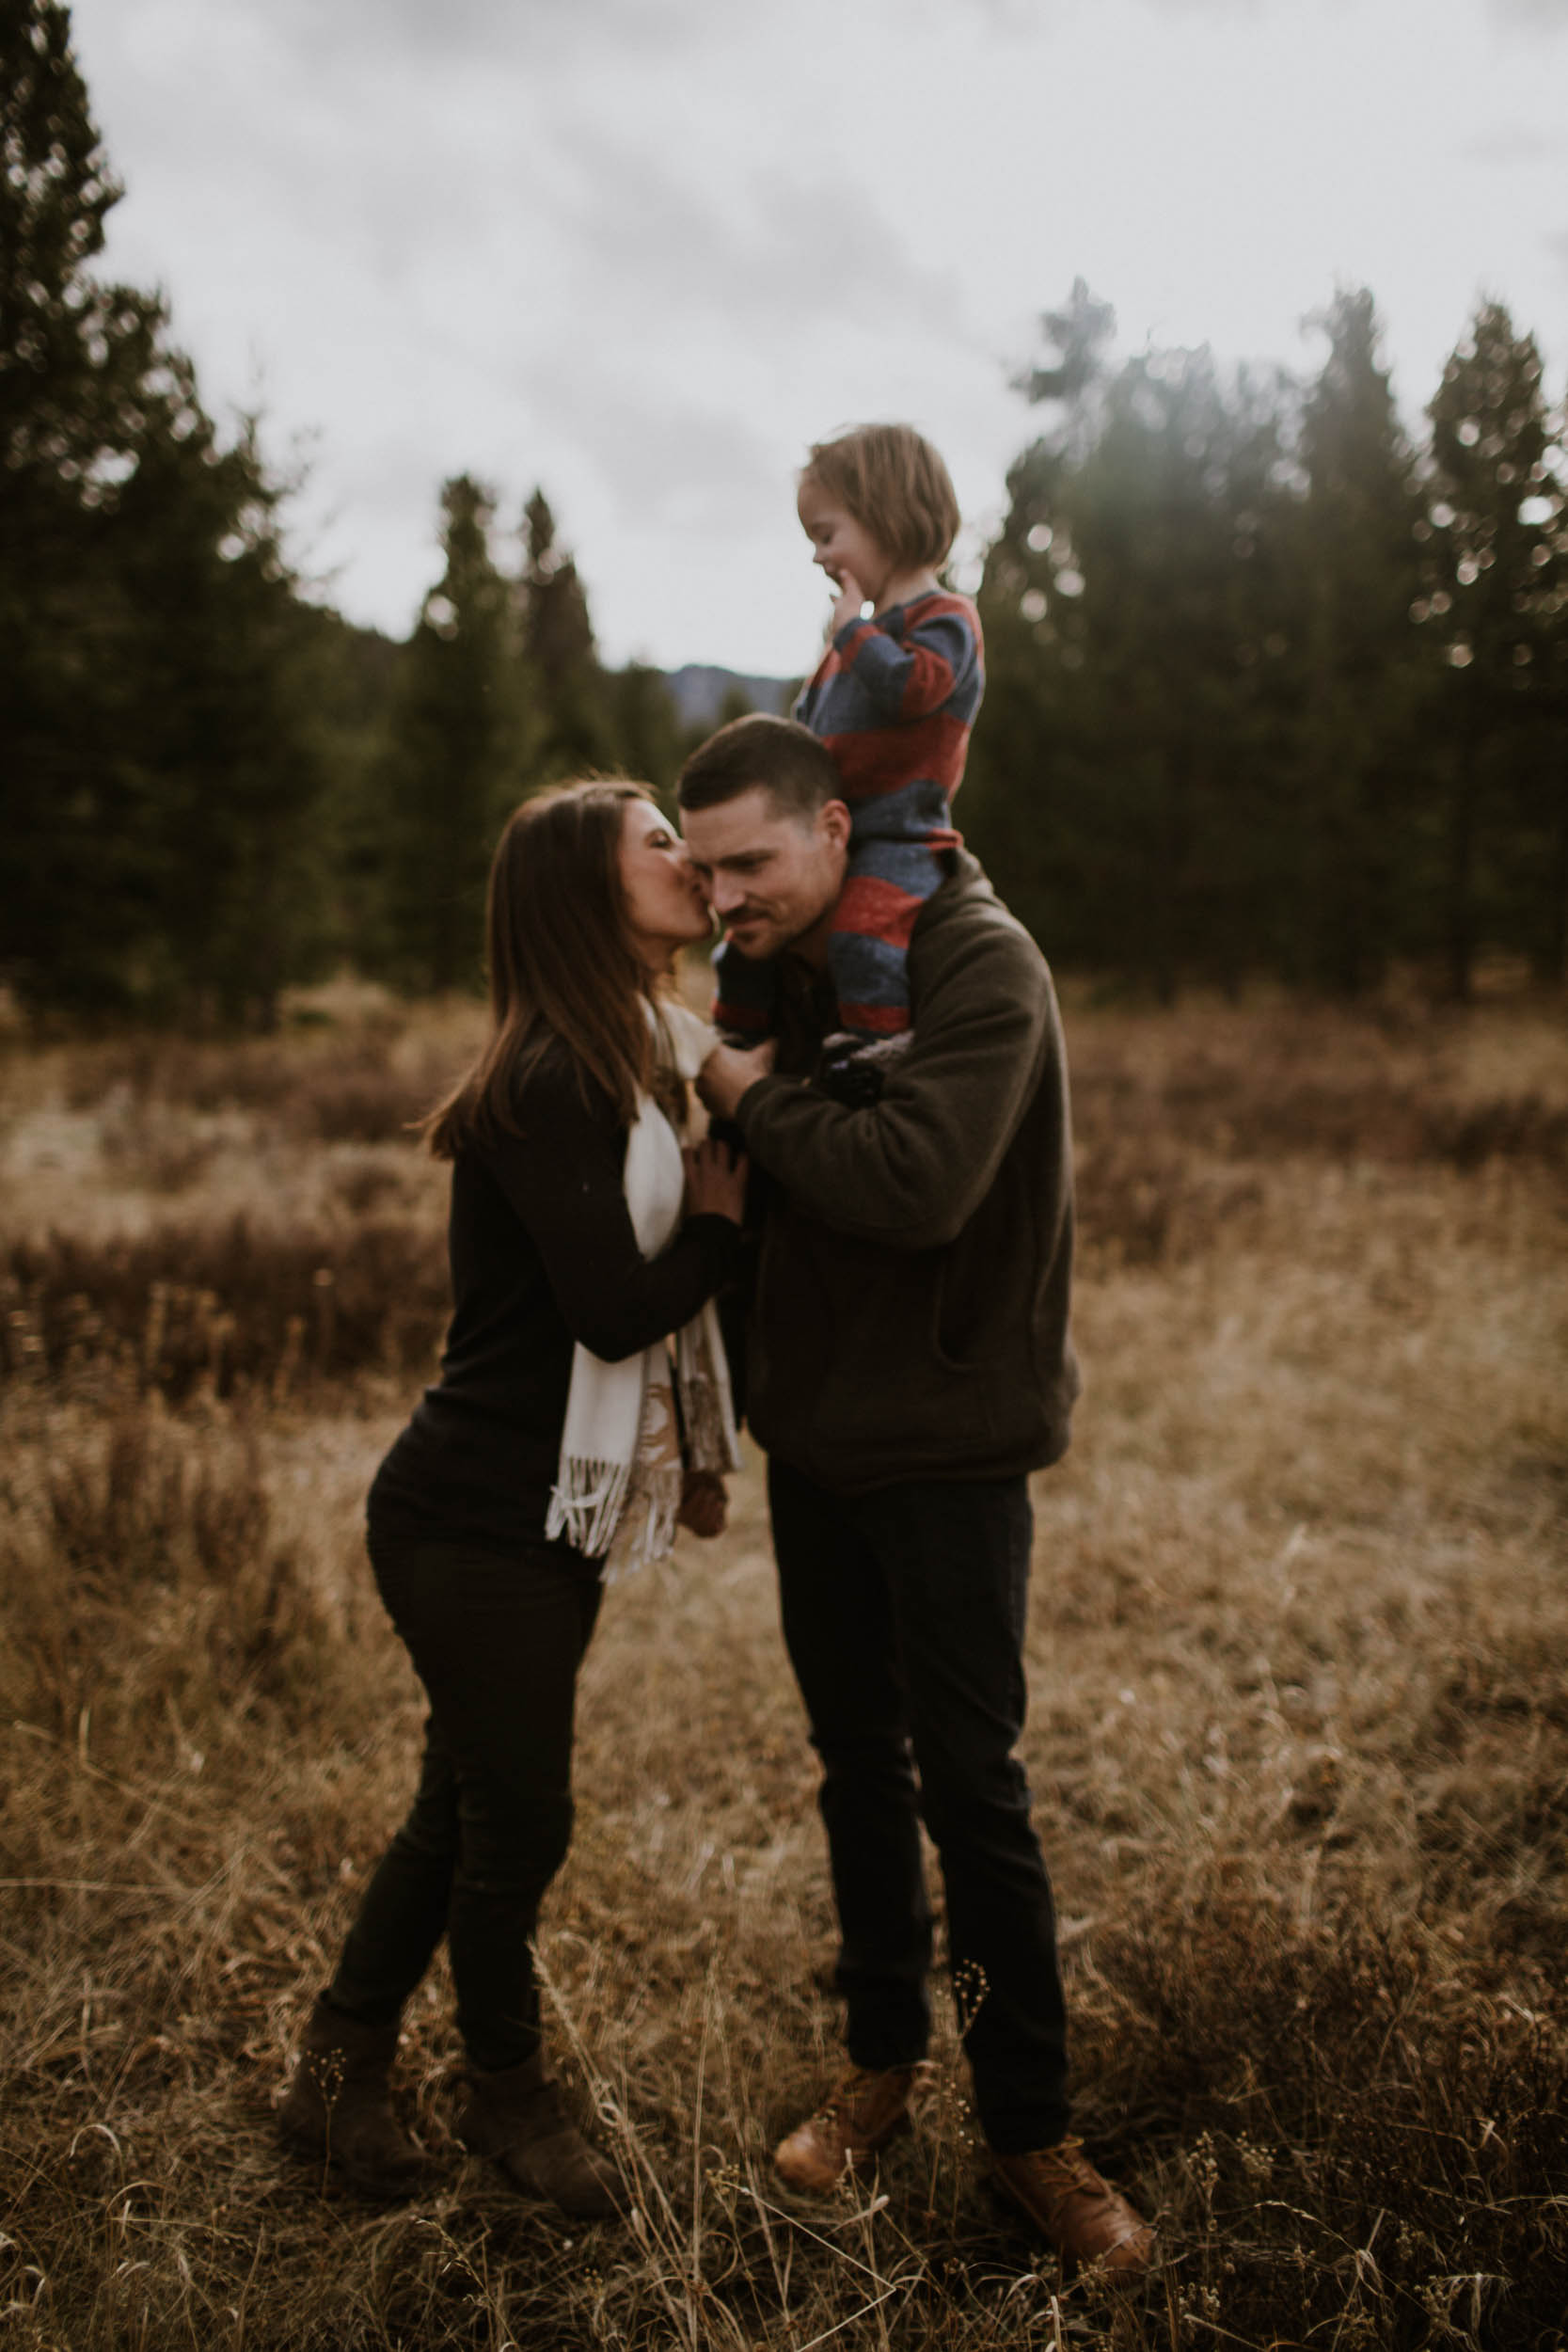 sunvalleyfamily_christinemariephoto-28.jpg